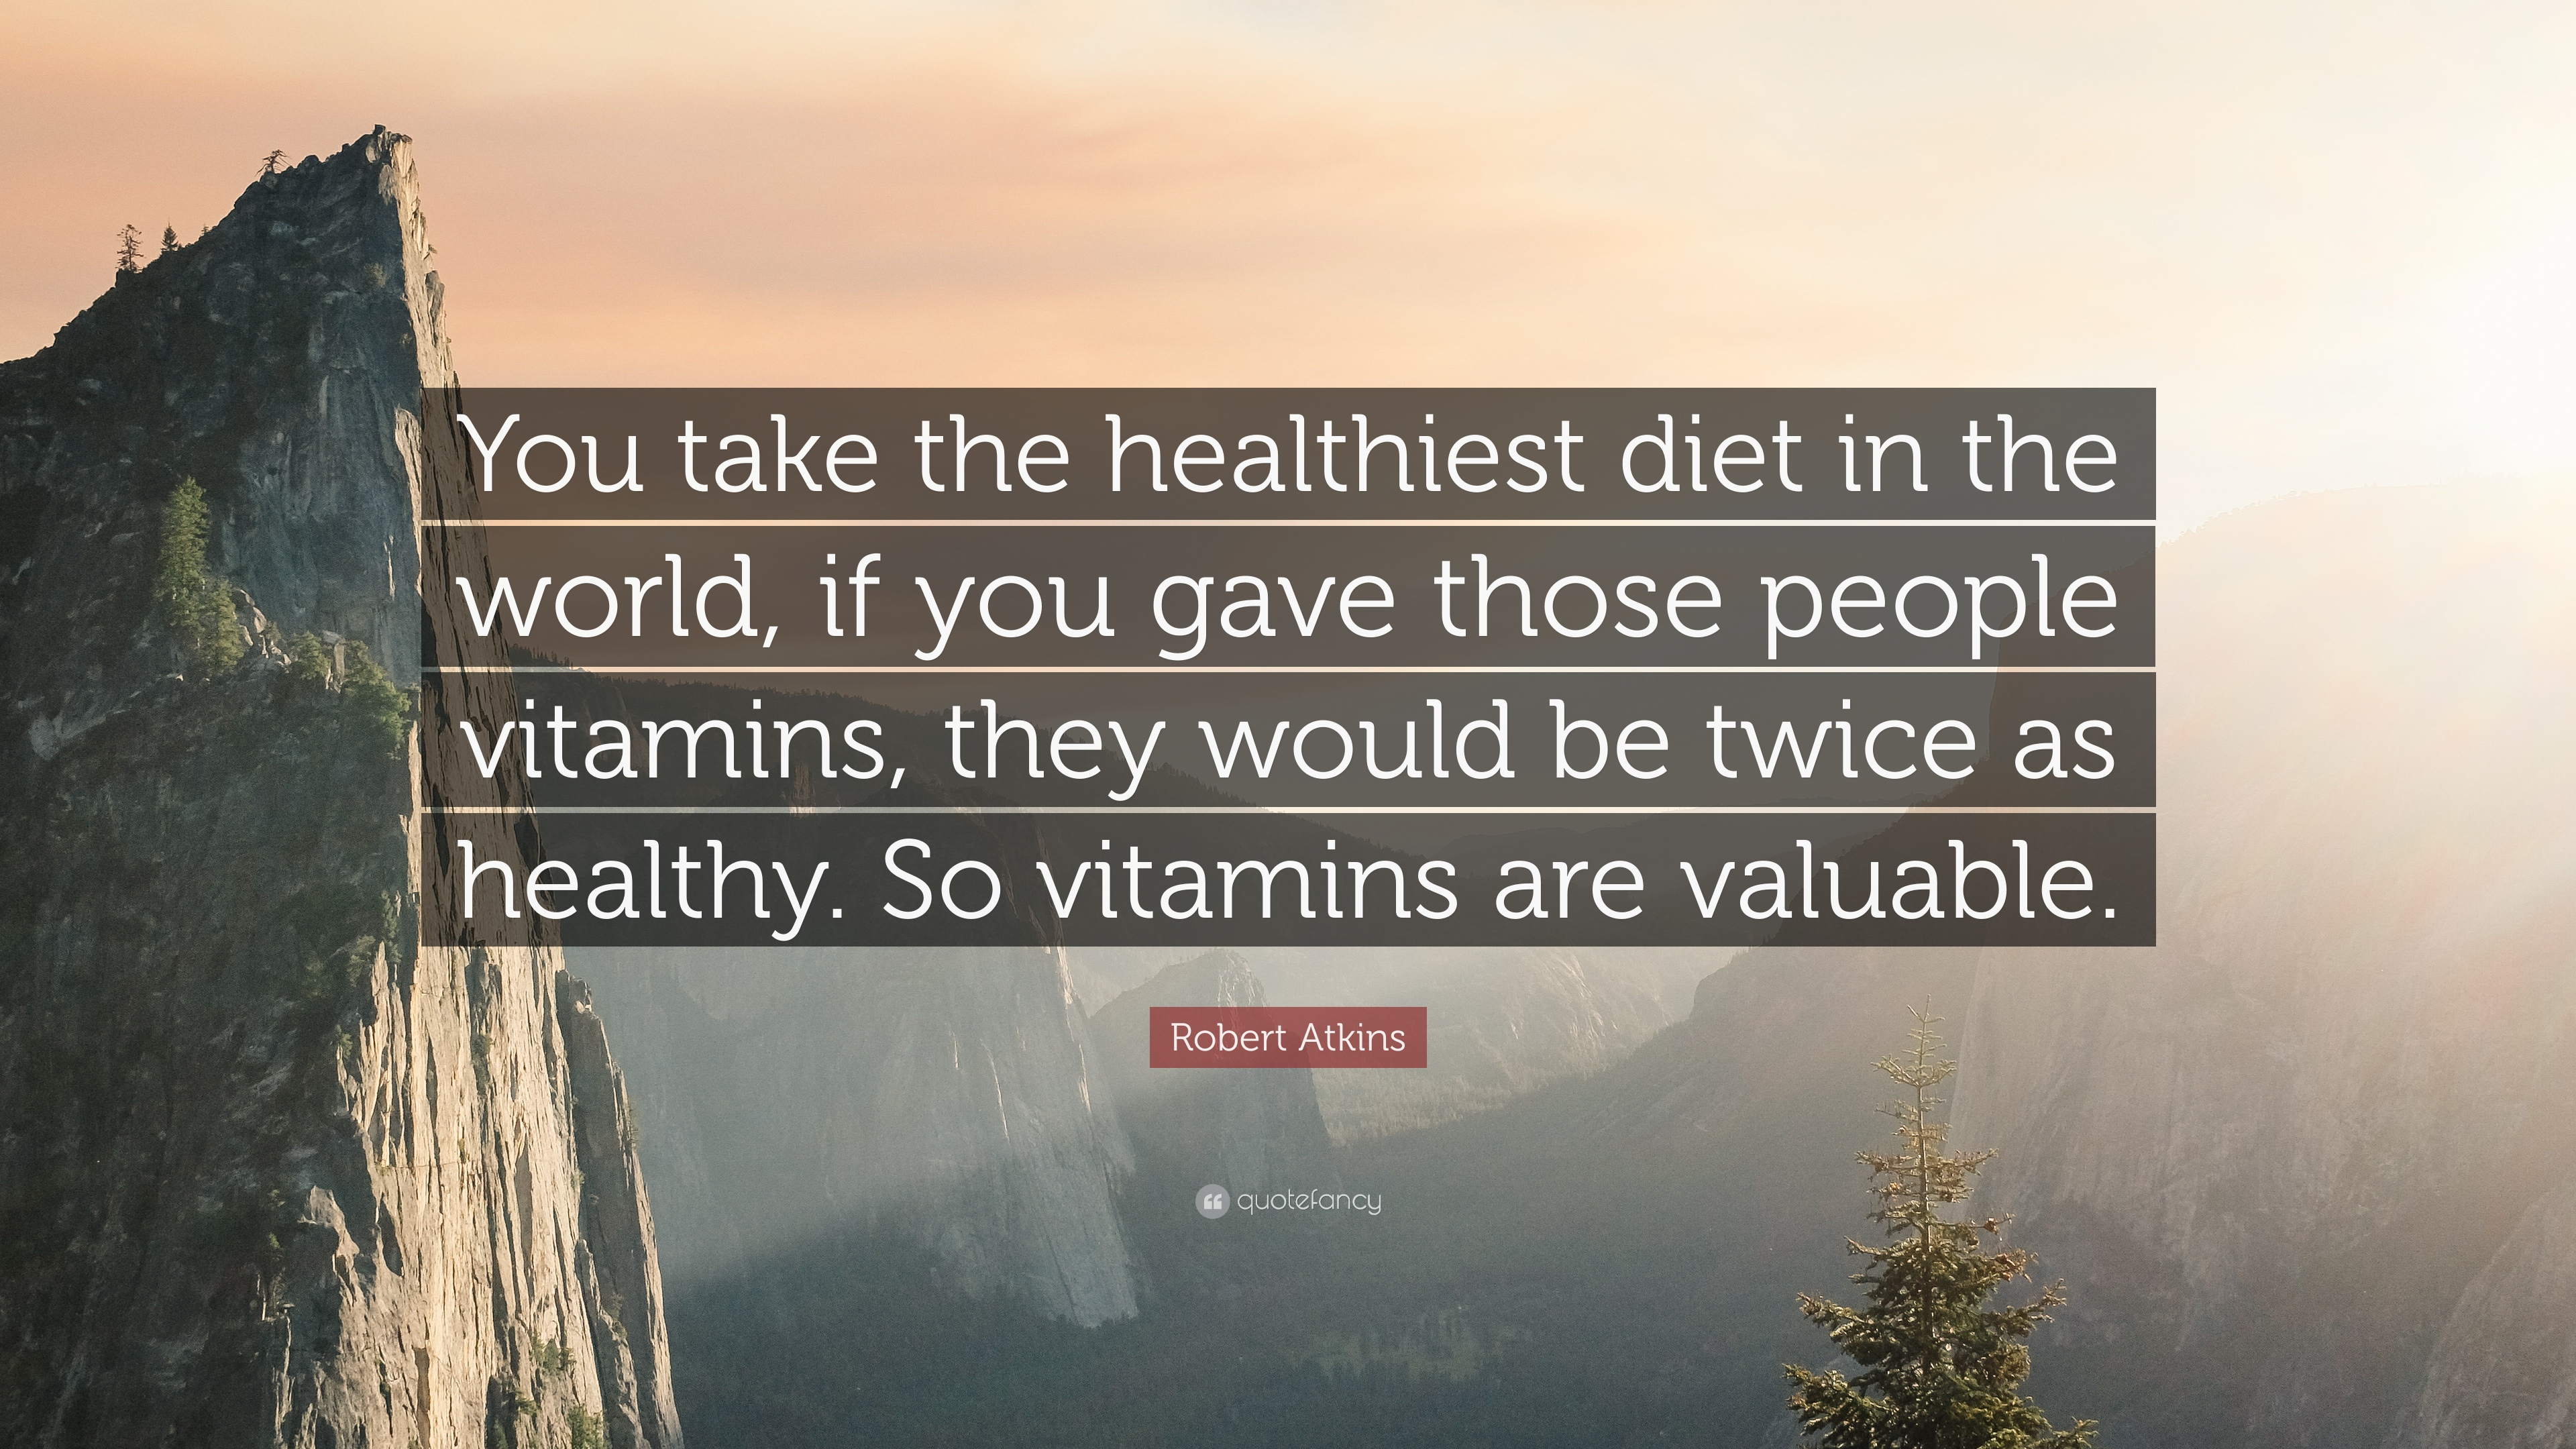 Robert Atkins Quote You Take The Healthiest Diet In The World If You Gave Those People Vitamins They Would Be Twice As Healthy So Vitamin 7 Wallpapers Quotefancy